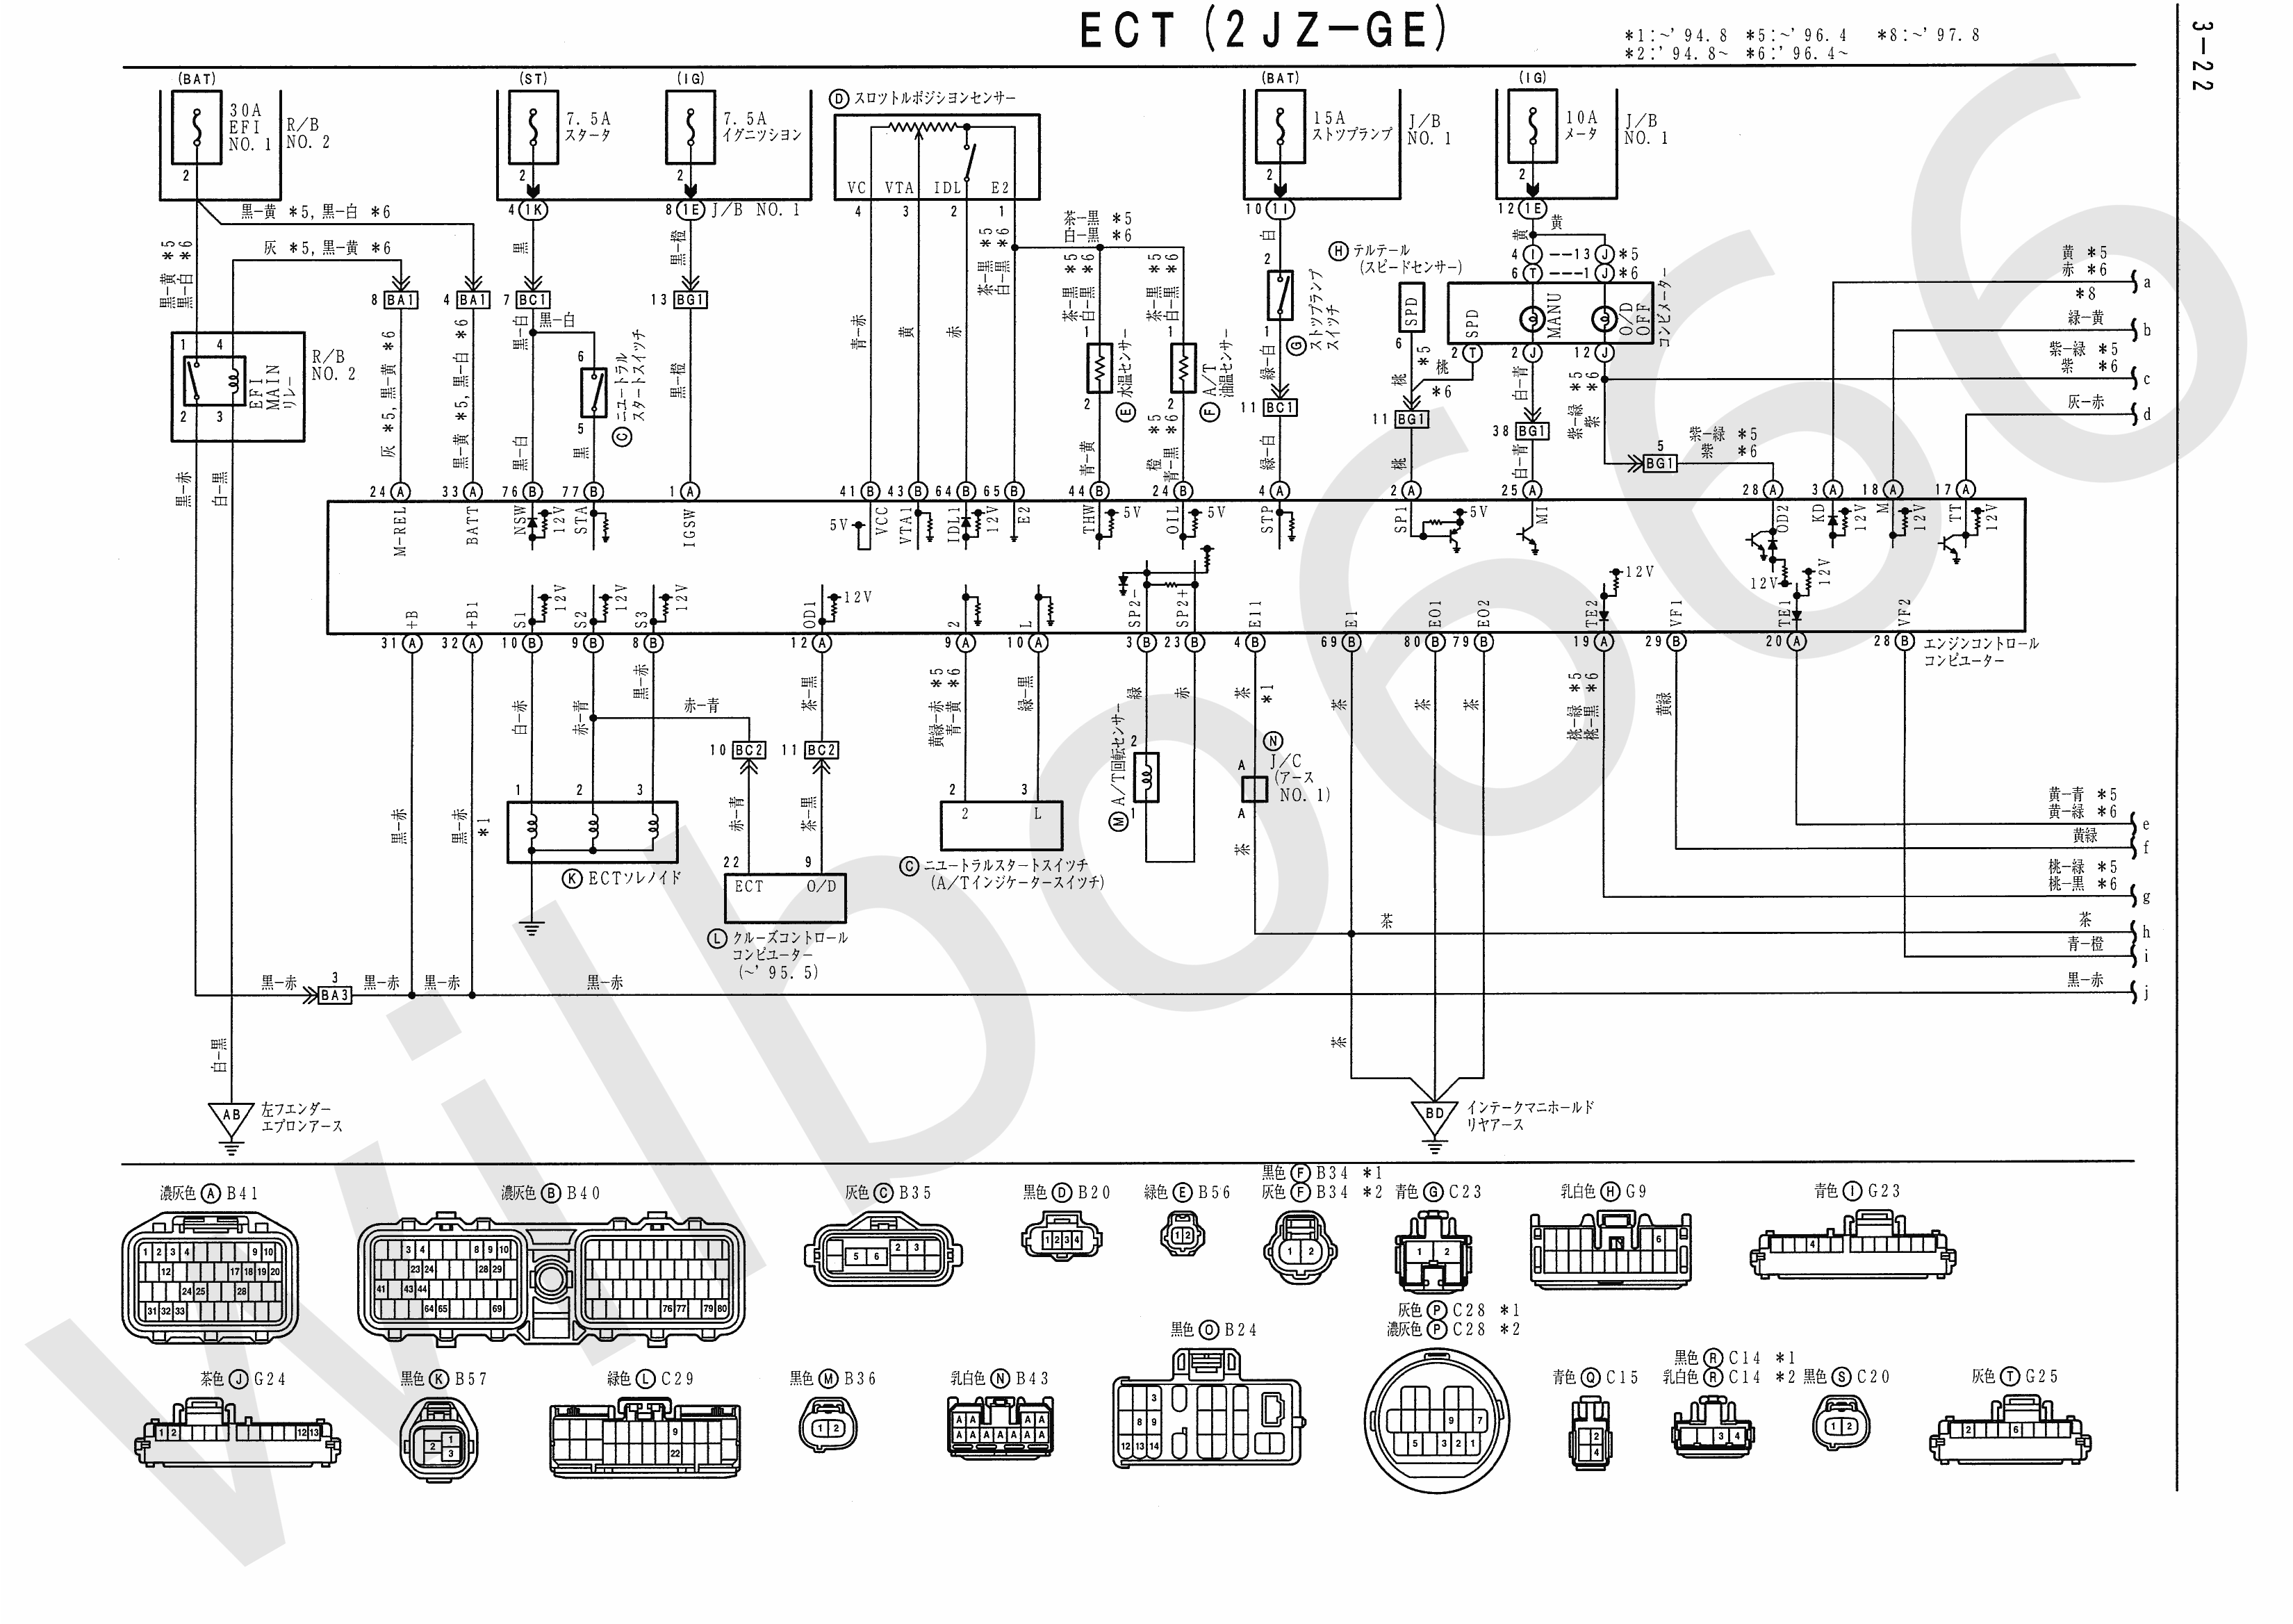 JZA80 Electrical Wiring Diagram 6742505 3 22 wilbo666 2jz ge jza80 supra engine wiring Toyota Stereo Wiring Diagram at gsmx.co